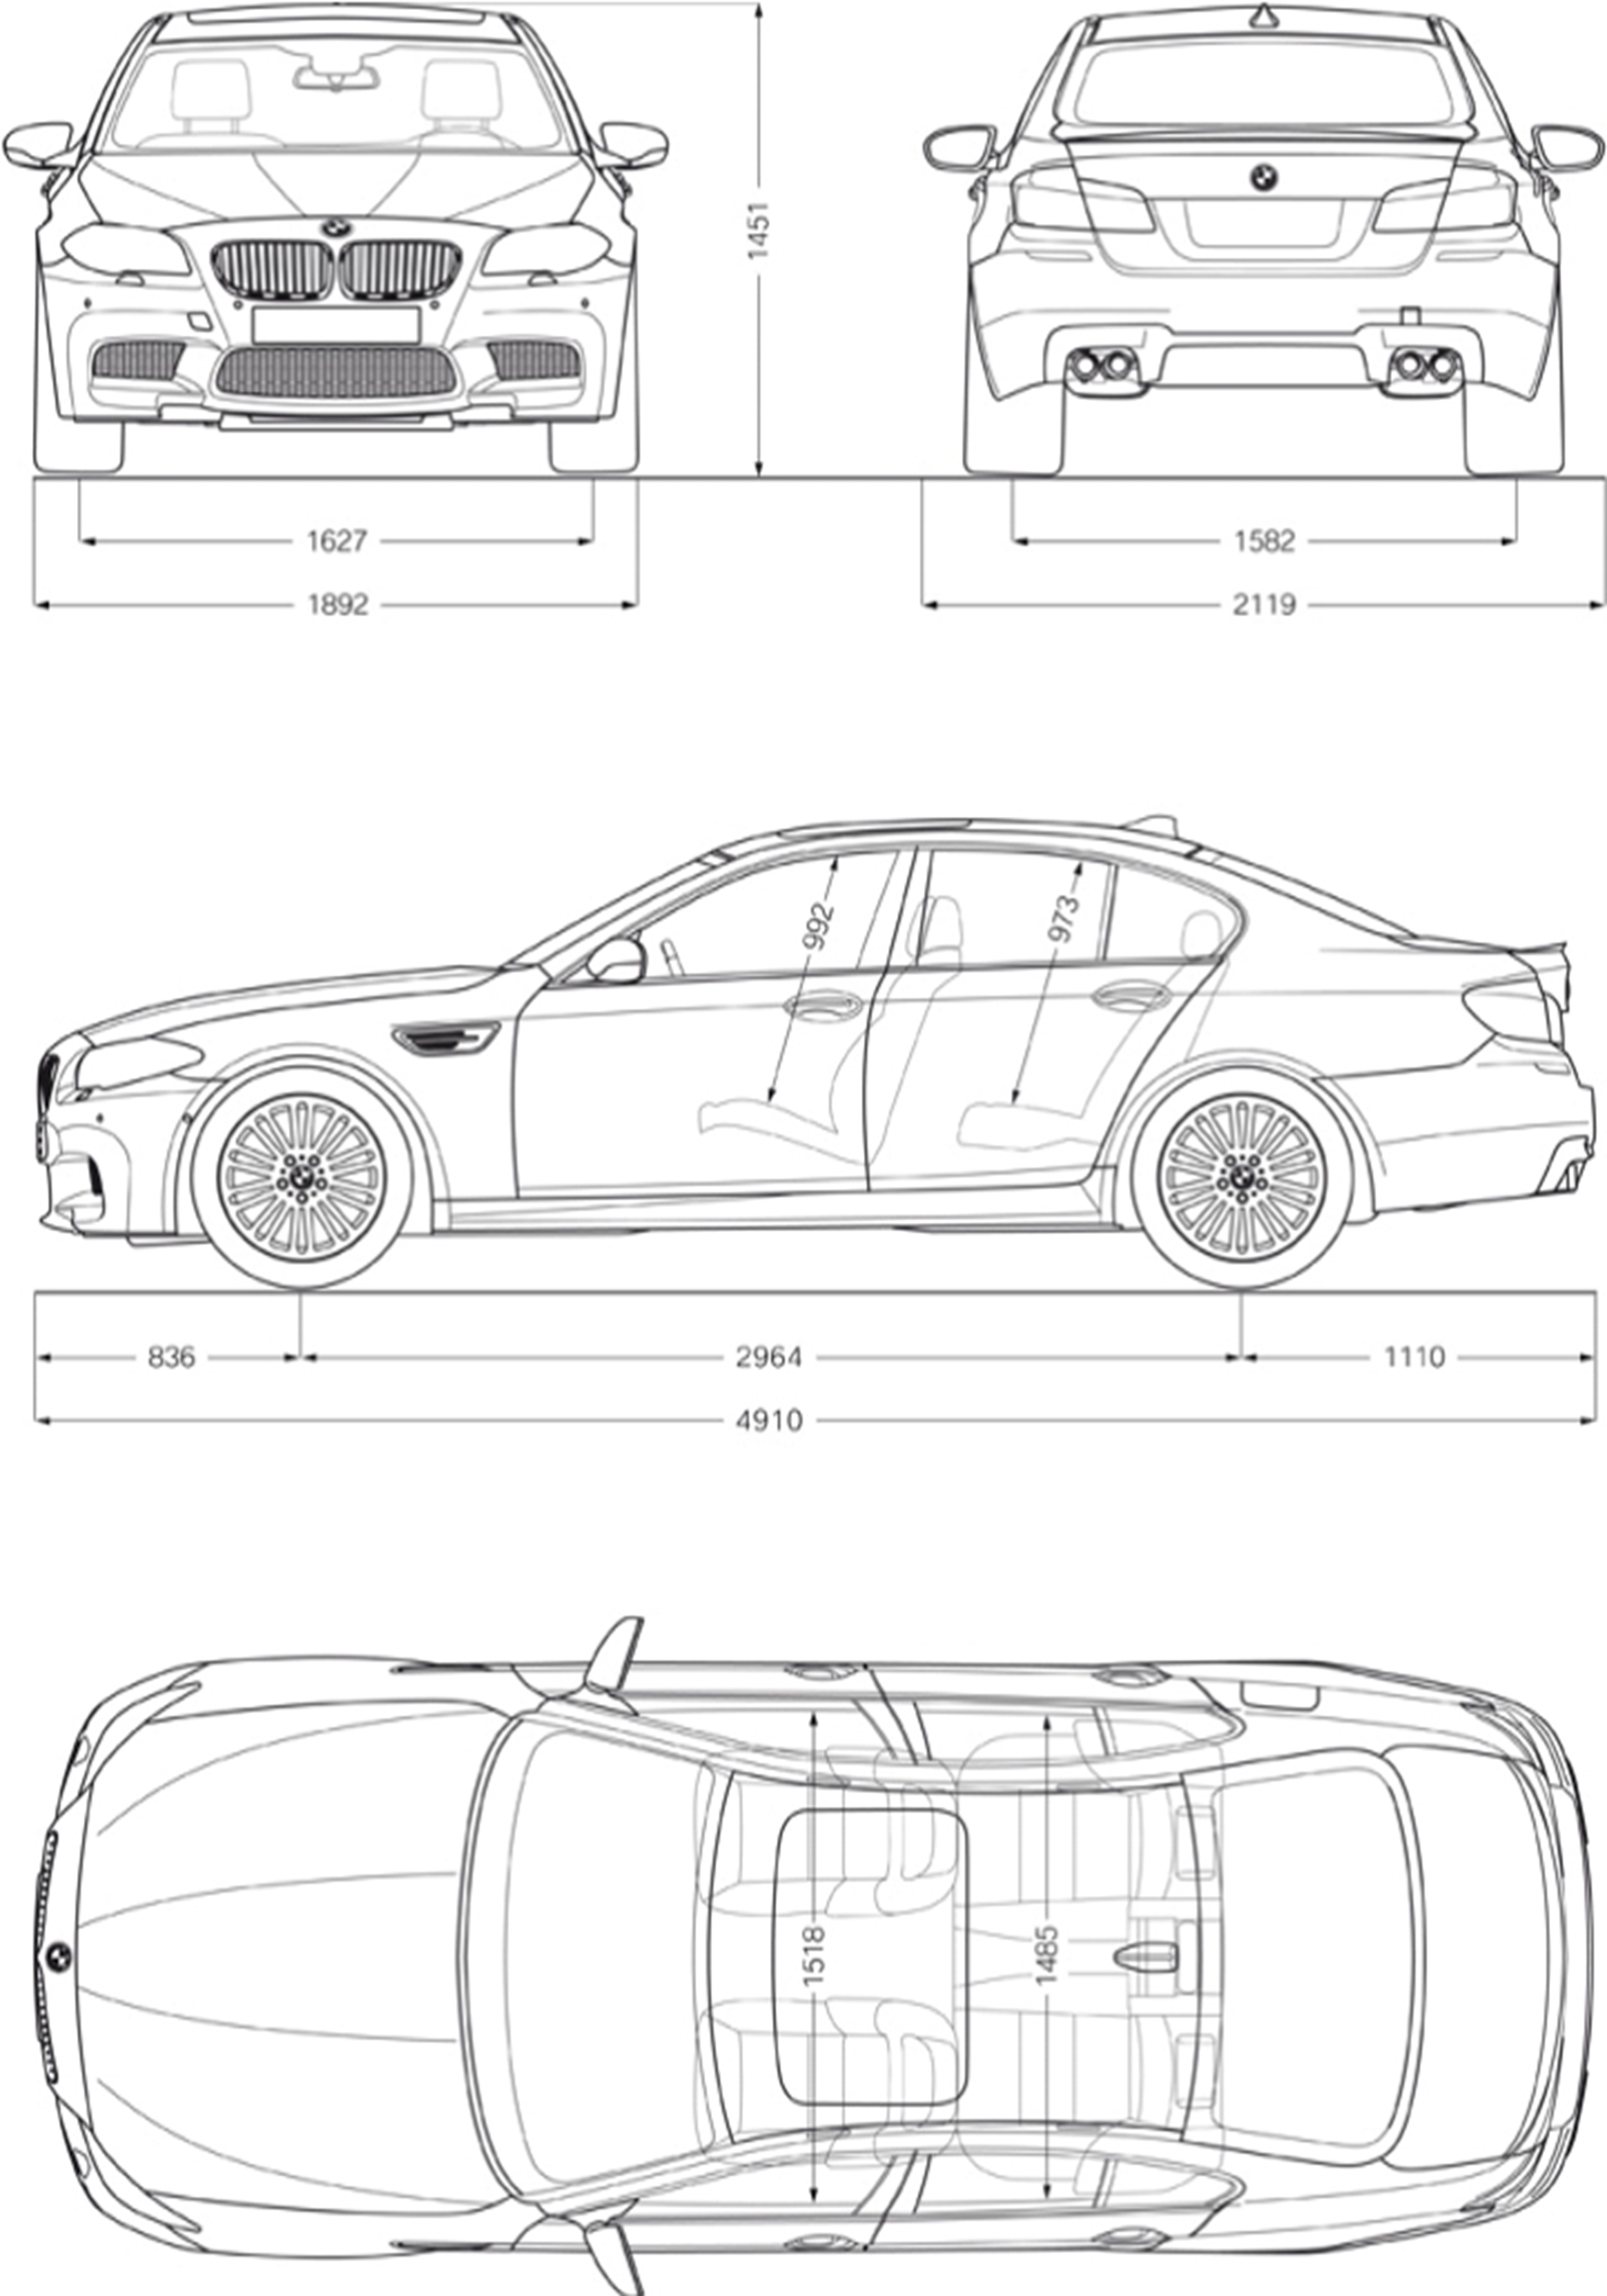 bmw m5 technical specifications. Black Bedroom Furniture Sets. Home Design Ideas